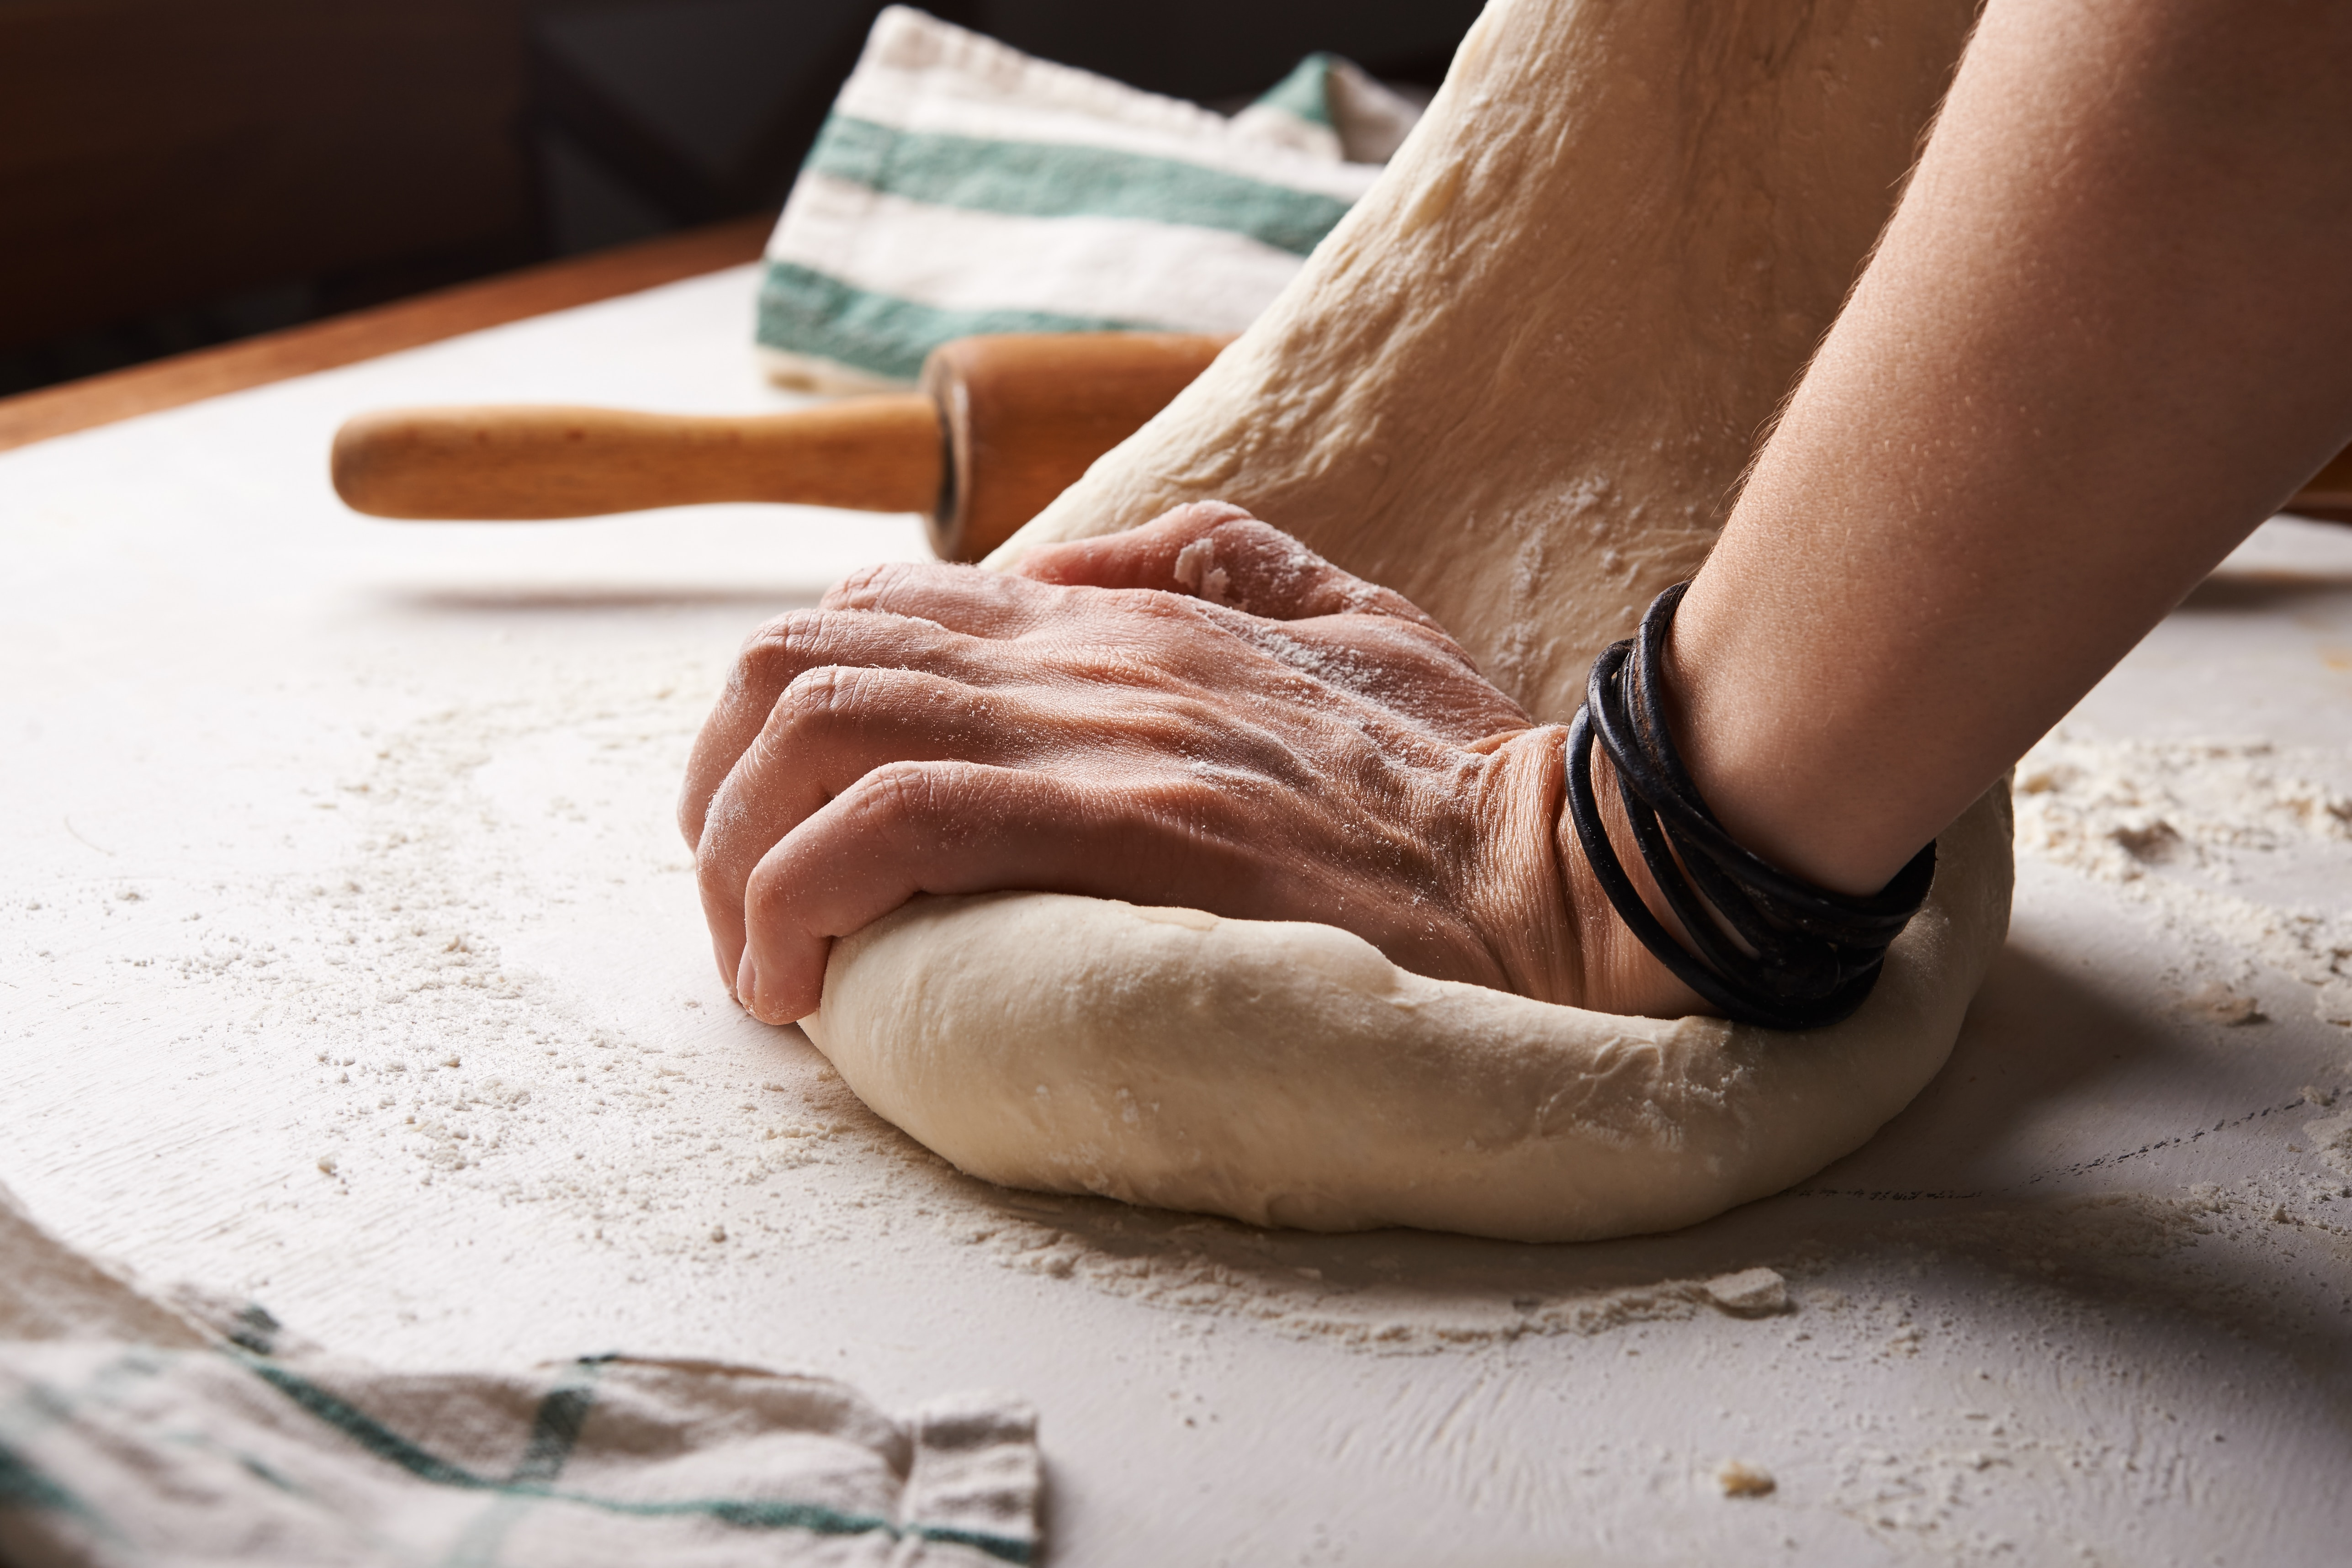 A person baking.